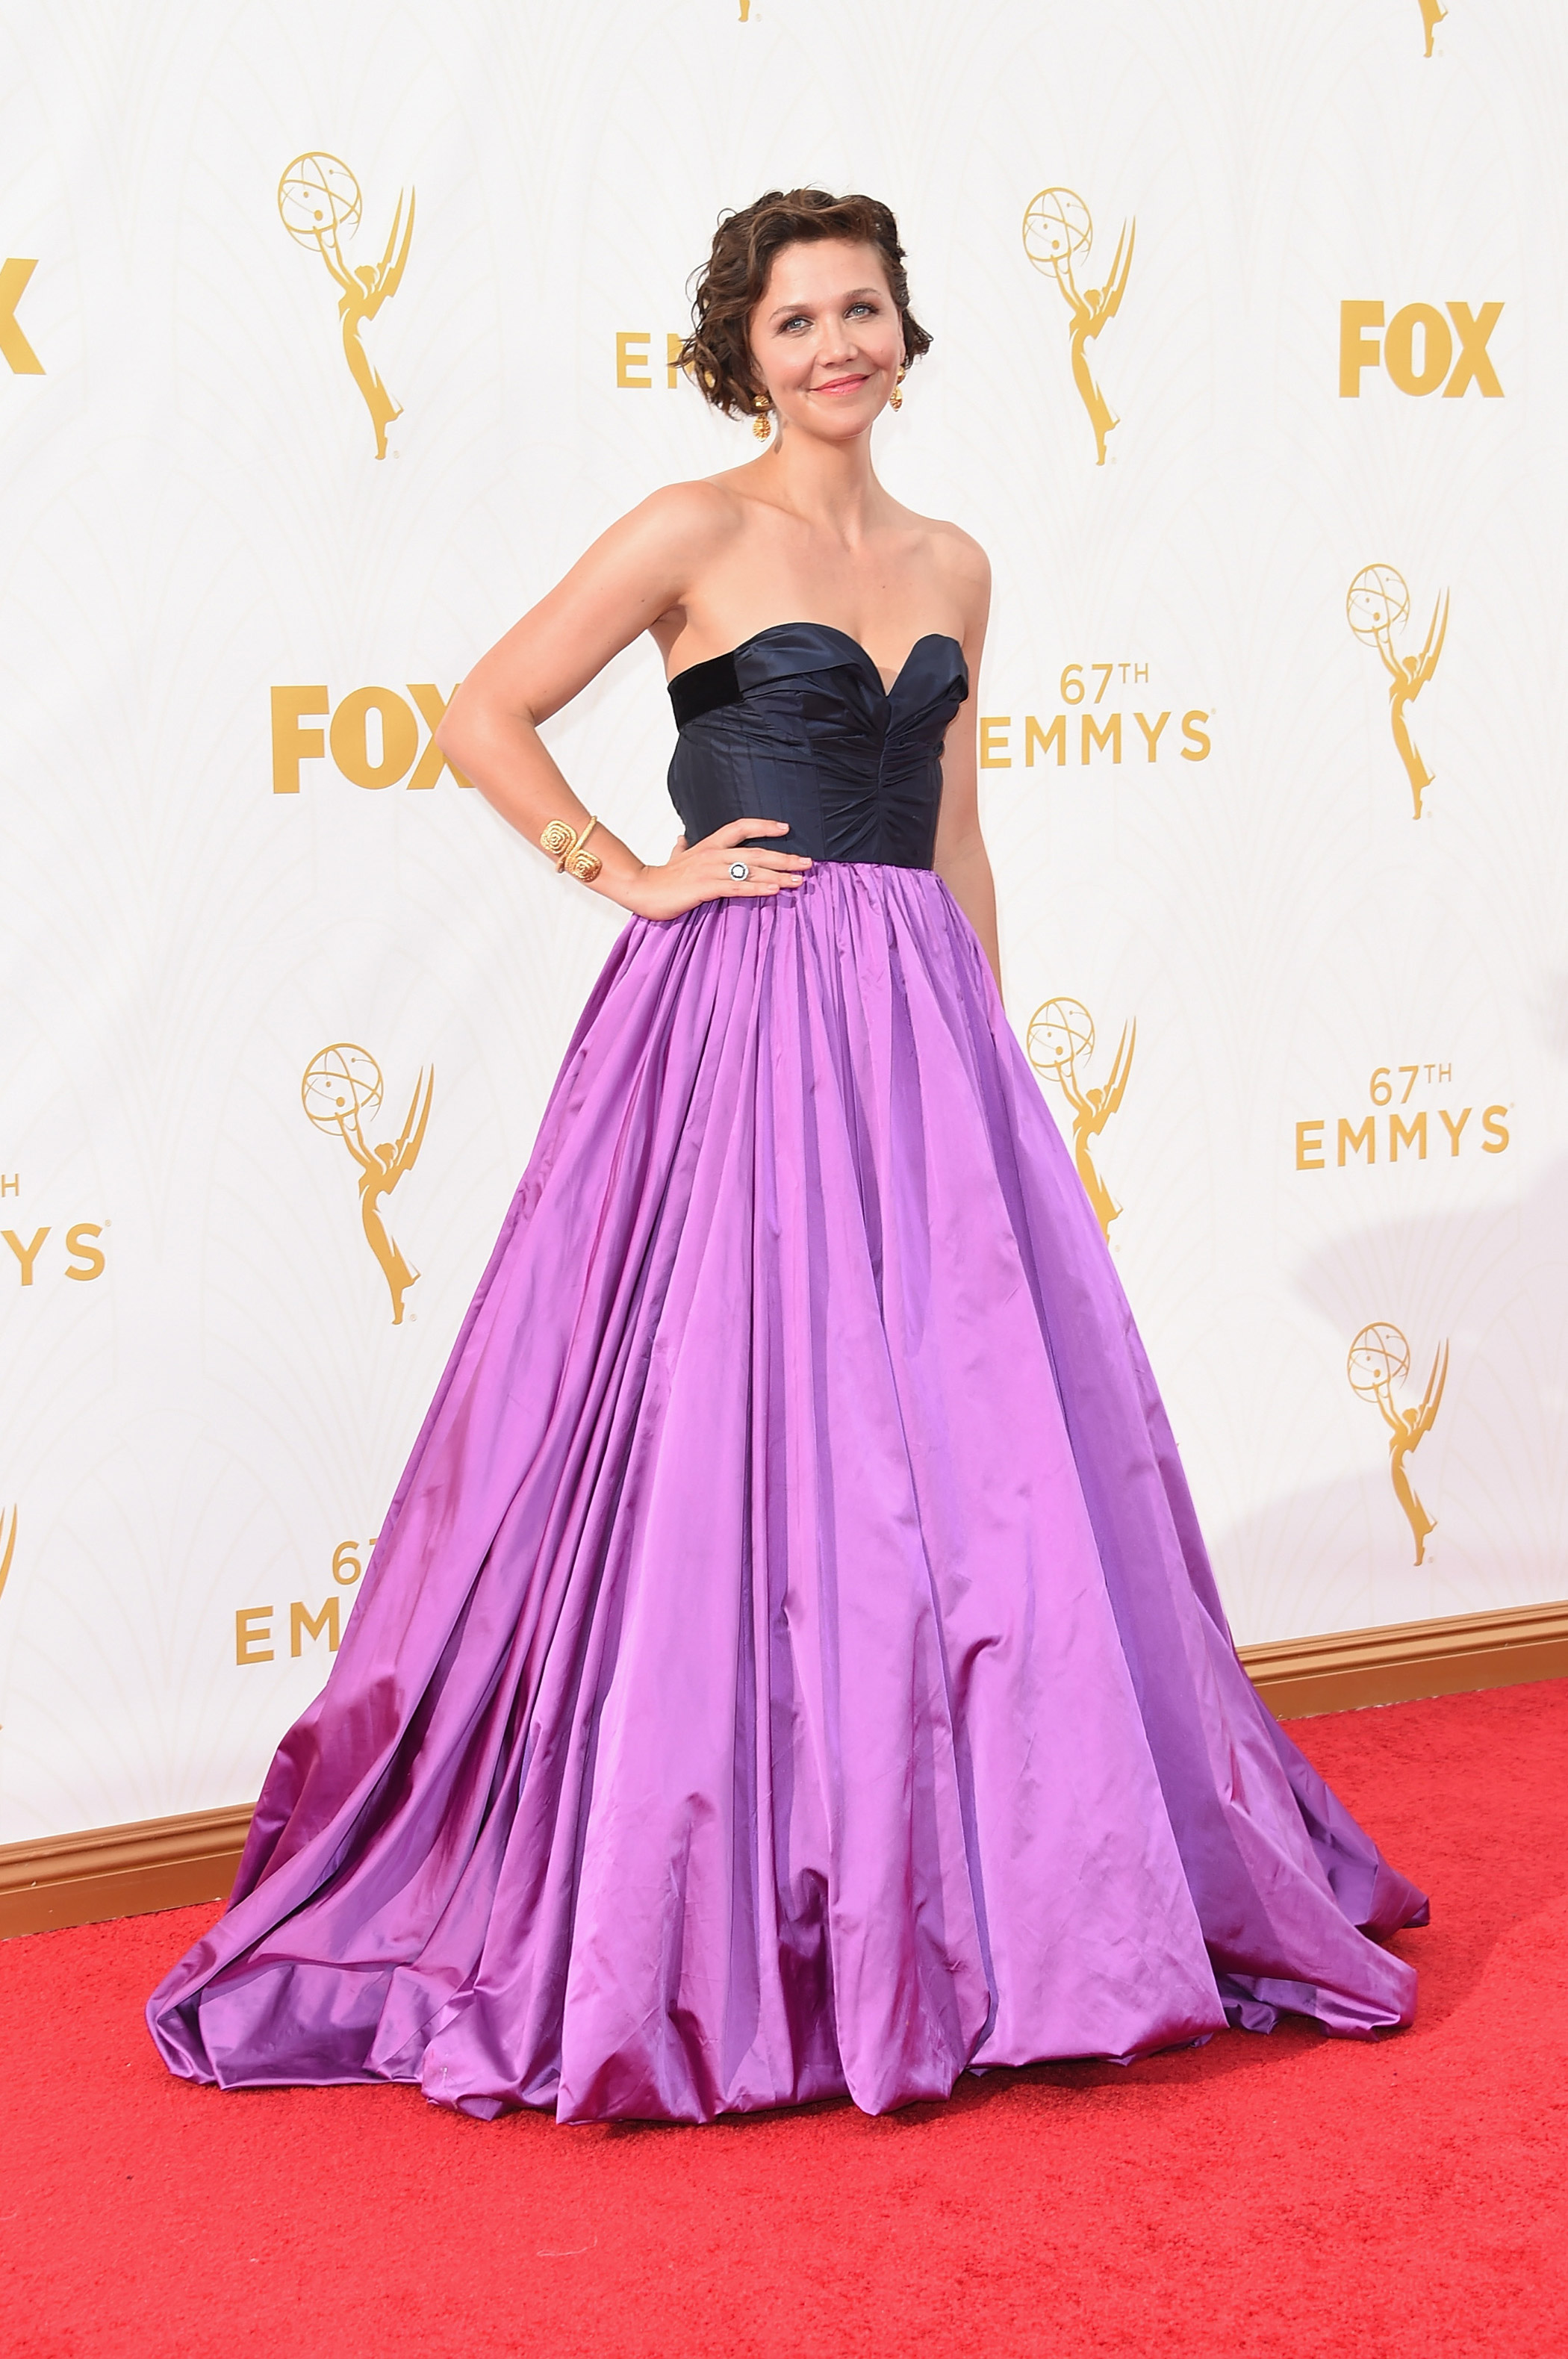 Maggie Gyllenhaal at the 67th Emmy Award on Sept. 20, 2015 in Los Angeles.